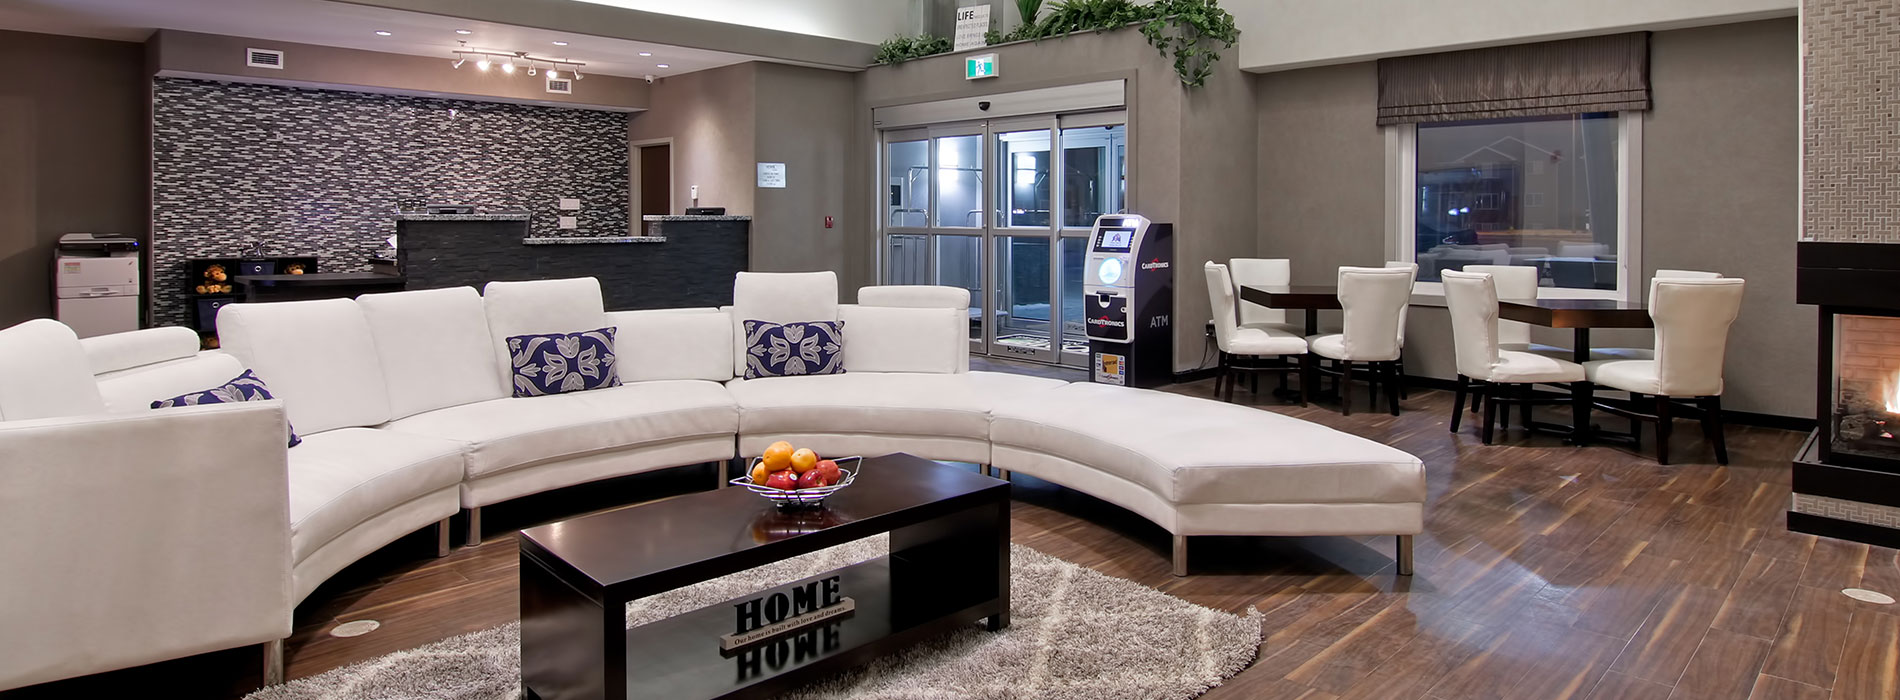 A large semi-circular white sectional sofa dominates the space in the lobby of d3h Home Inn & Suites Regina Airport.  Around the perimeter of the space is an ATM placed next to the glass door entrance and the slate gray stone check-in counter stands in stark contrast against a black, white and gray patterned accent wall.